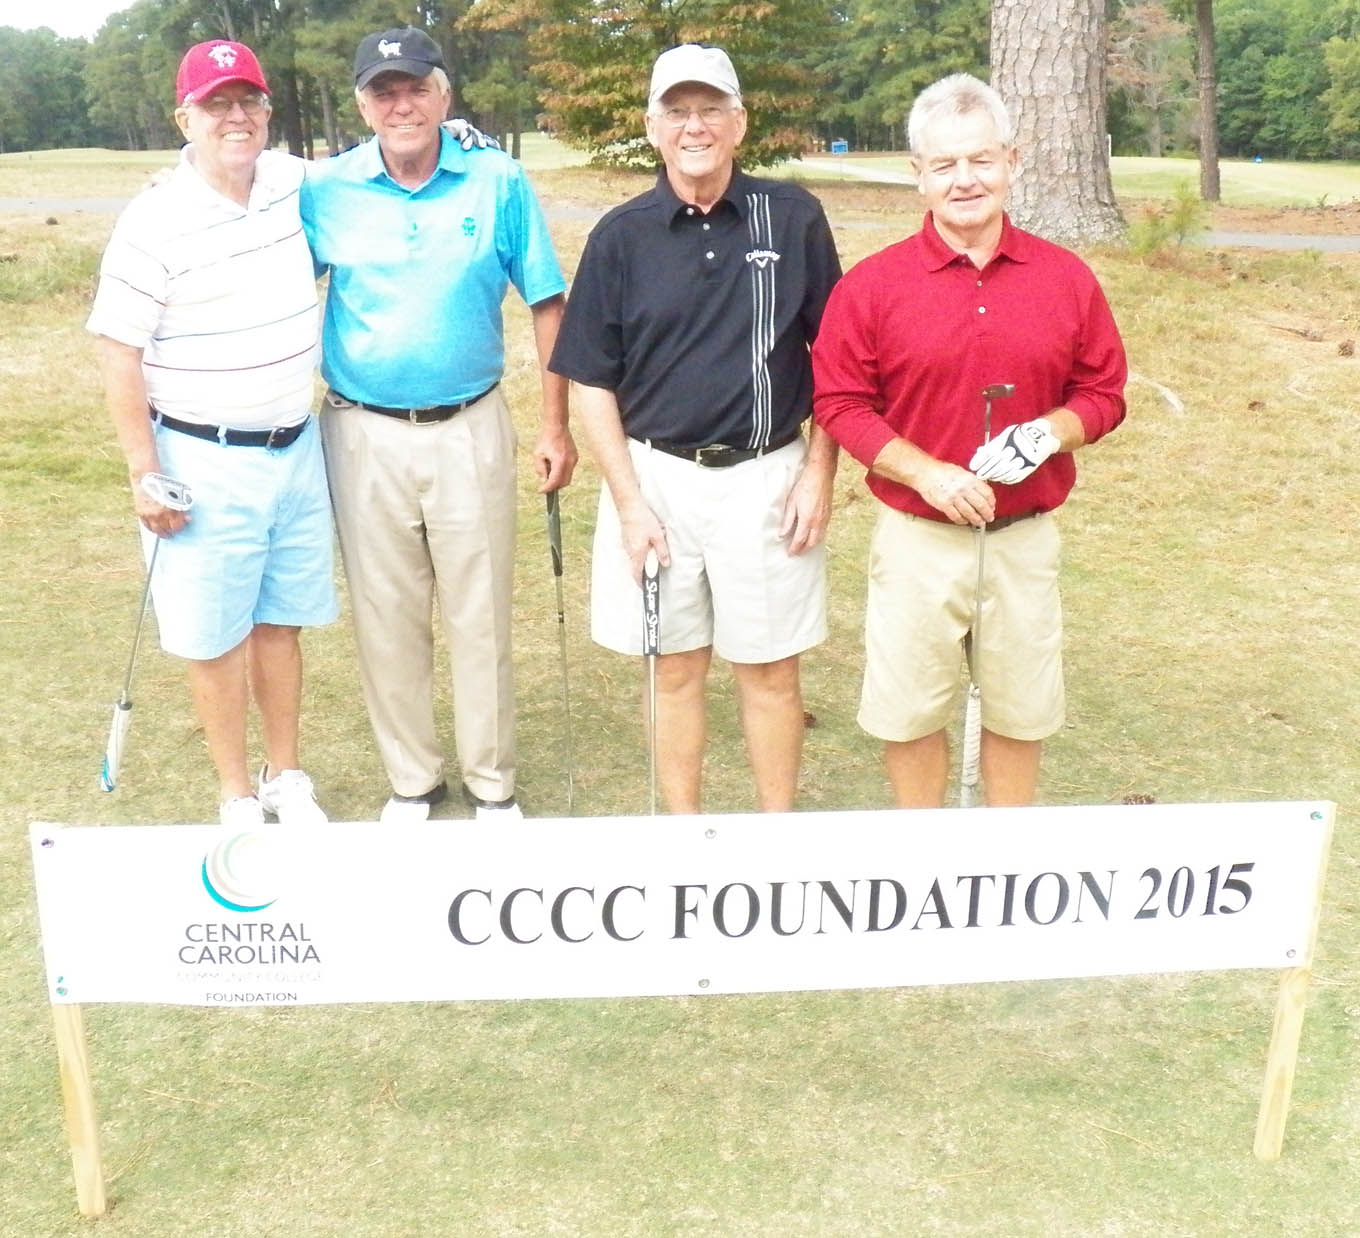 Click to enlarge,  The team of Mike Hendley, Rodney Harrill, Buddy Keller, and Odell Brady tied for first in the second flight of the afternoon tournament of the CCCC Foundation Lee Golf Classic.